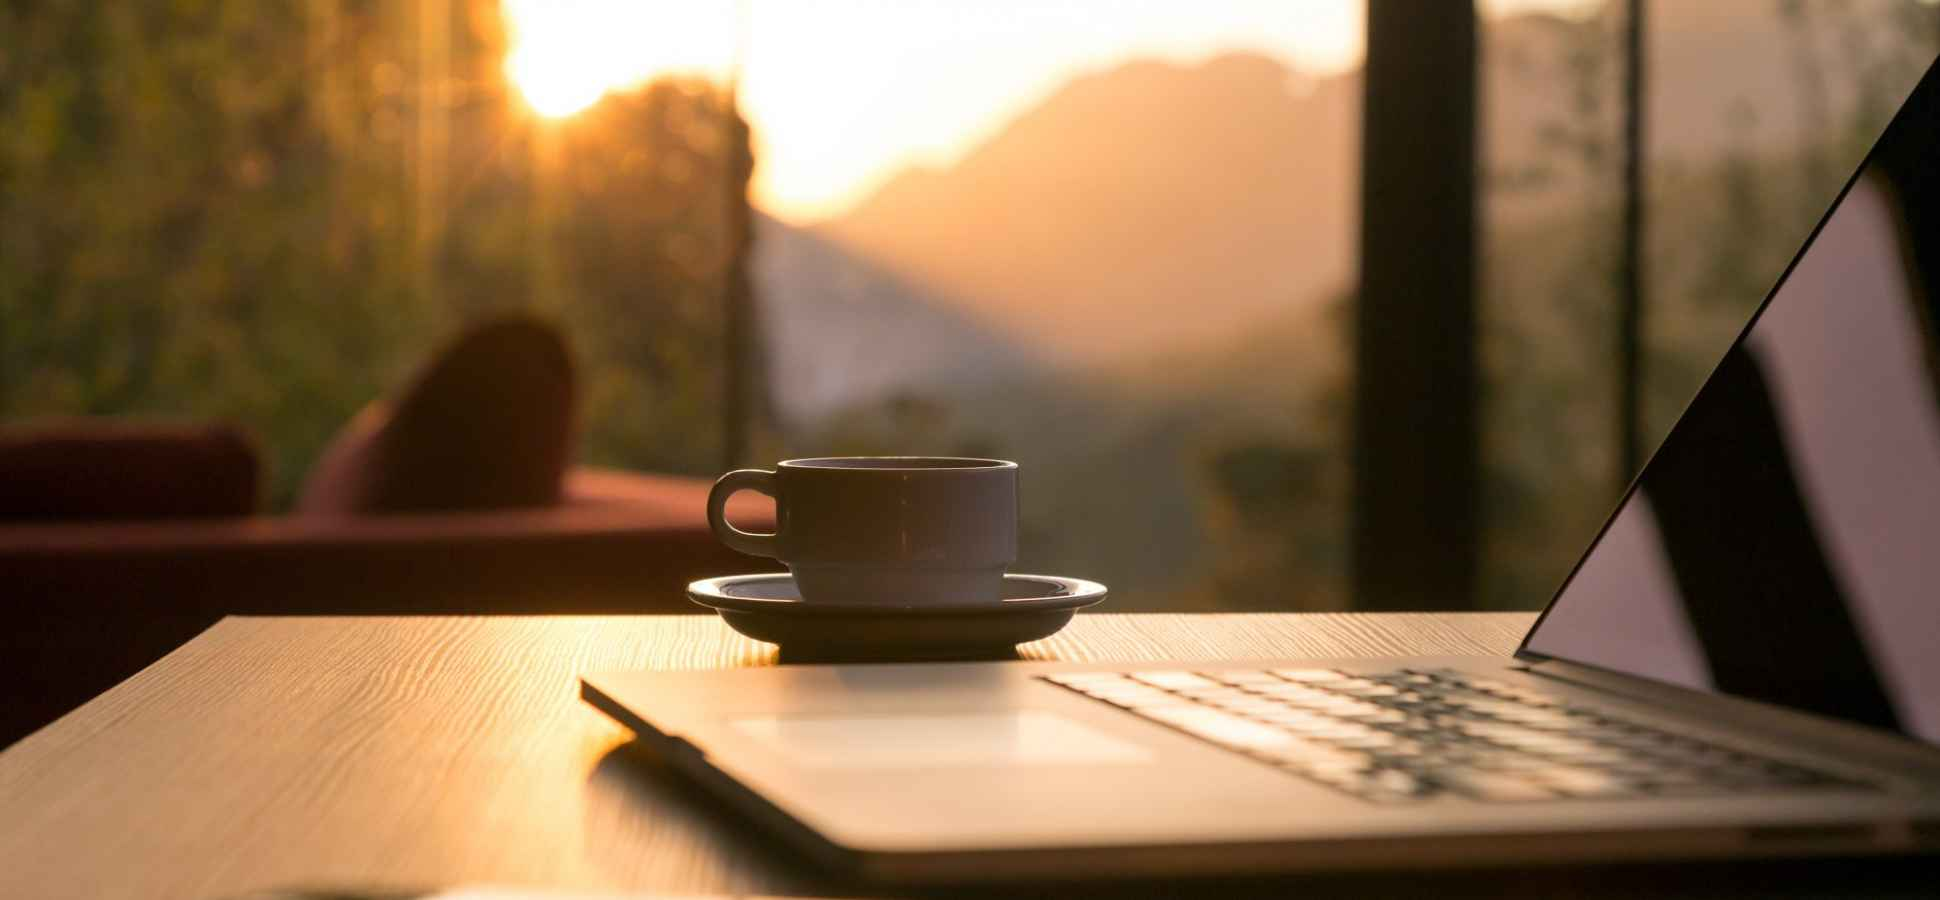 3 Reasons Why Now Is the Best Time to Freelance